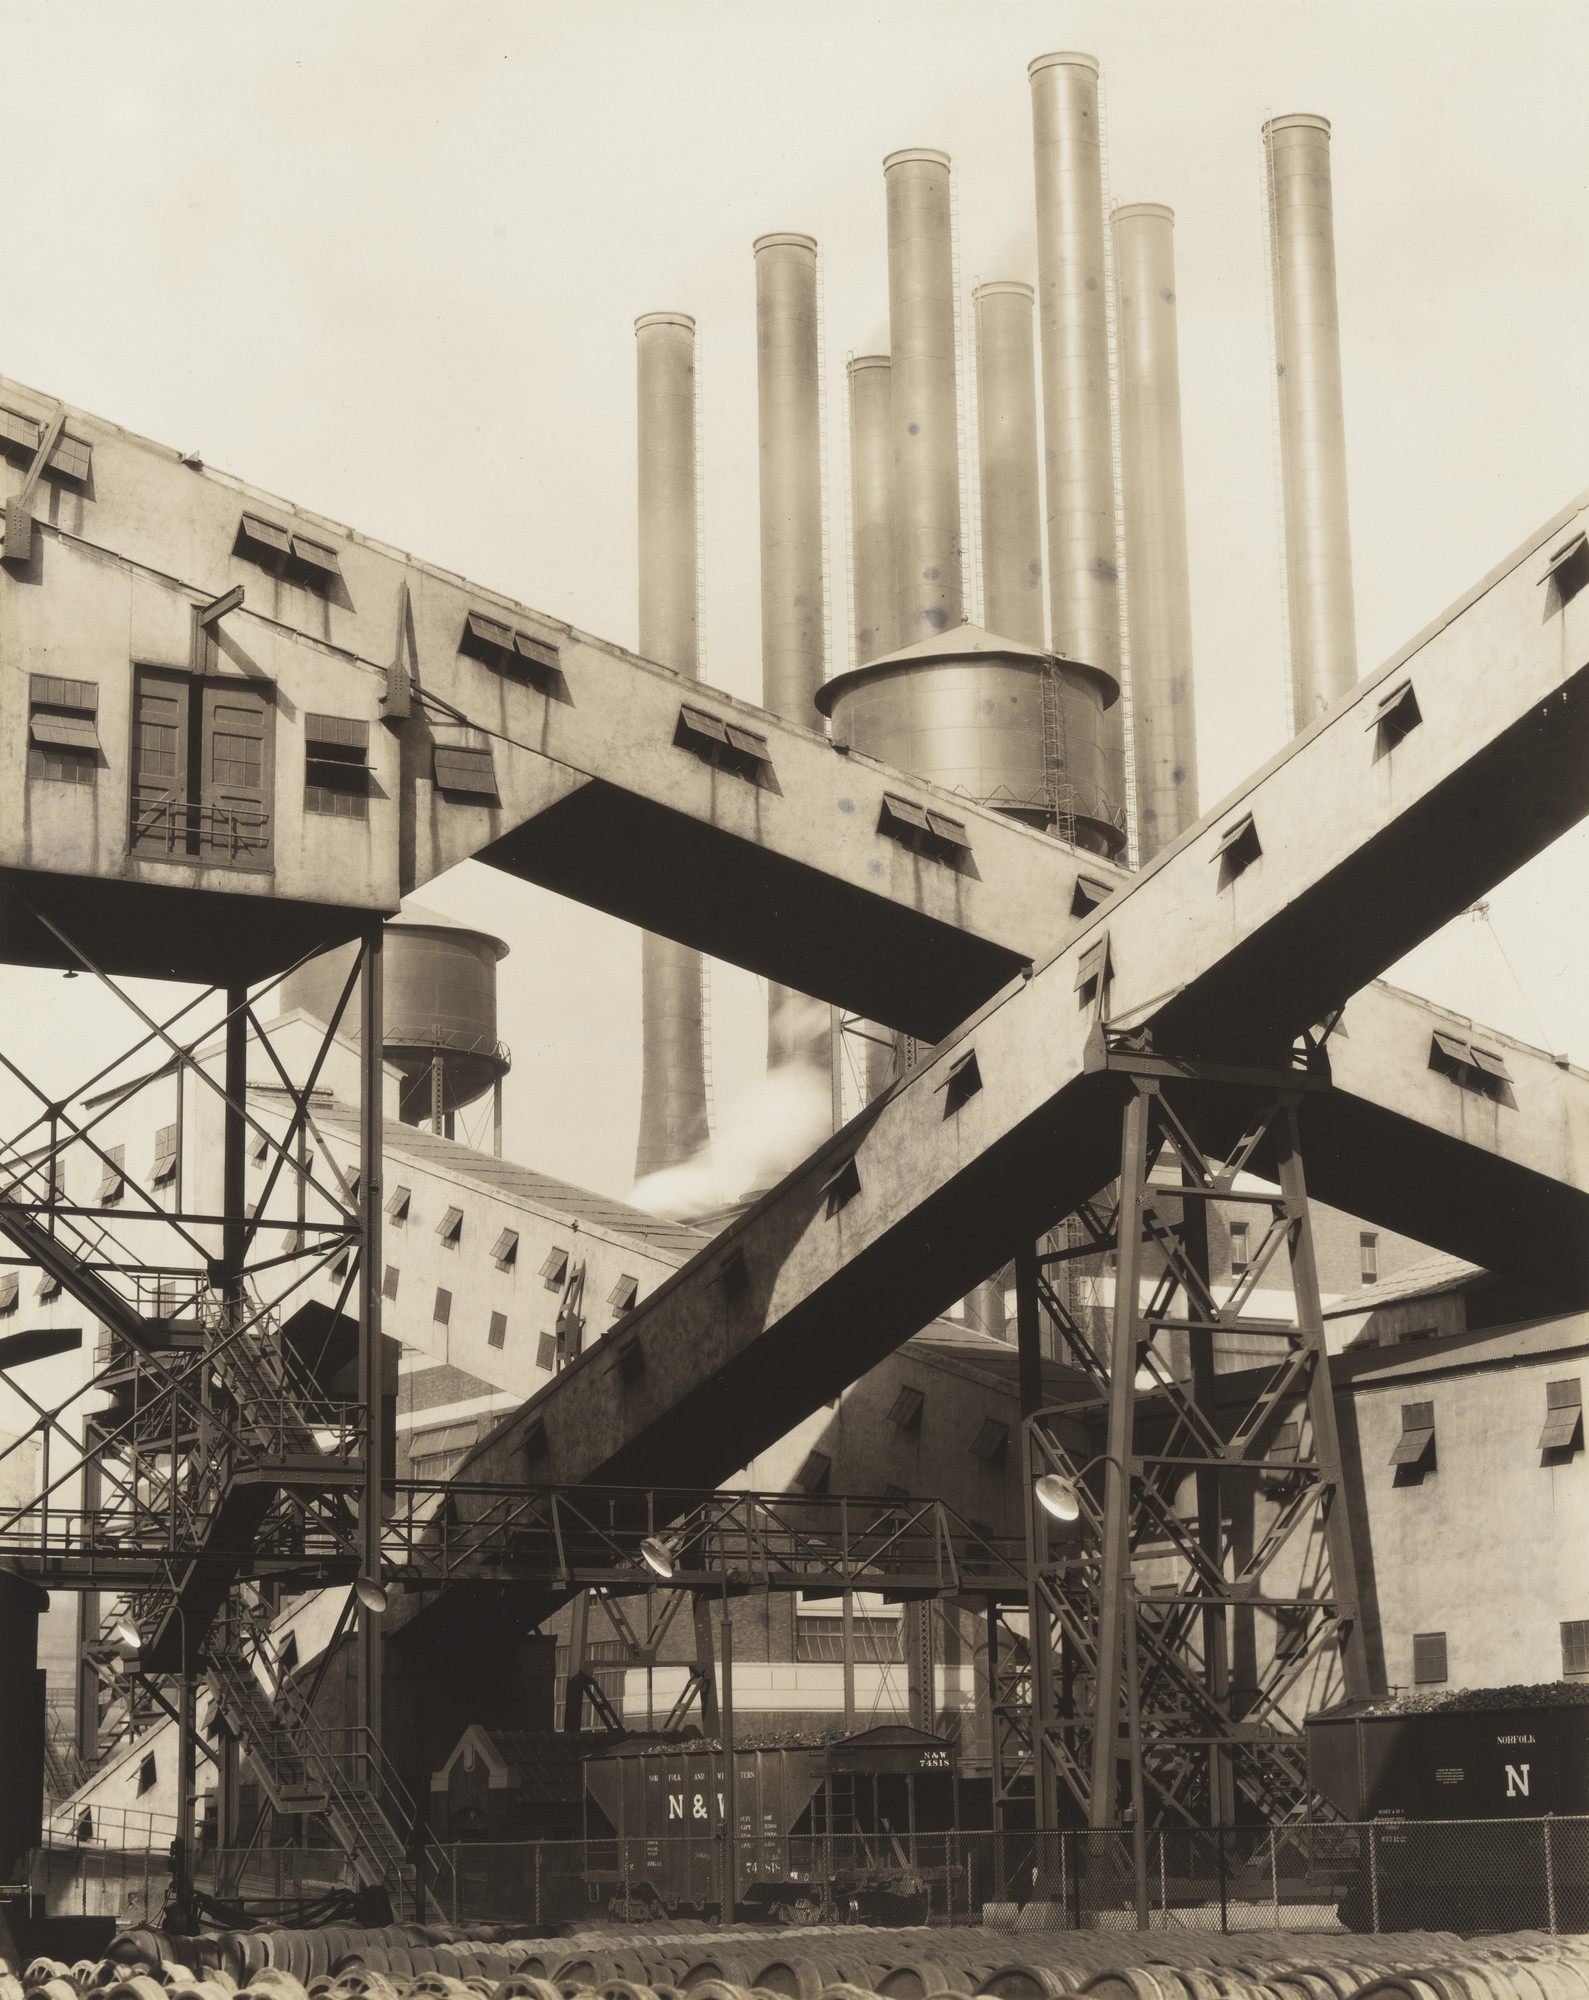 Charles Sheeler. Criss-Crossed Conveyors, River Rouge Plant, Ford Motor Company. 1927